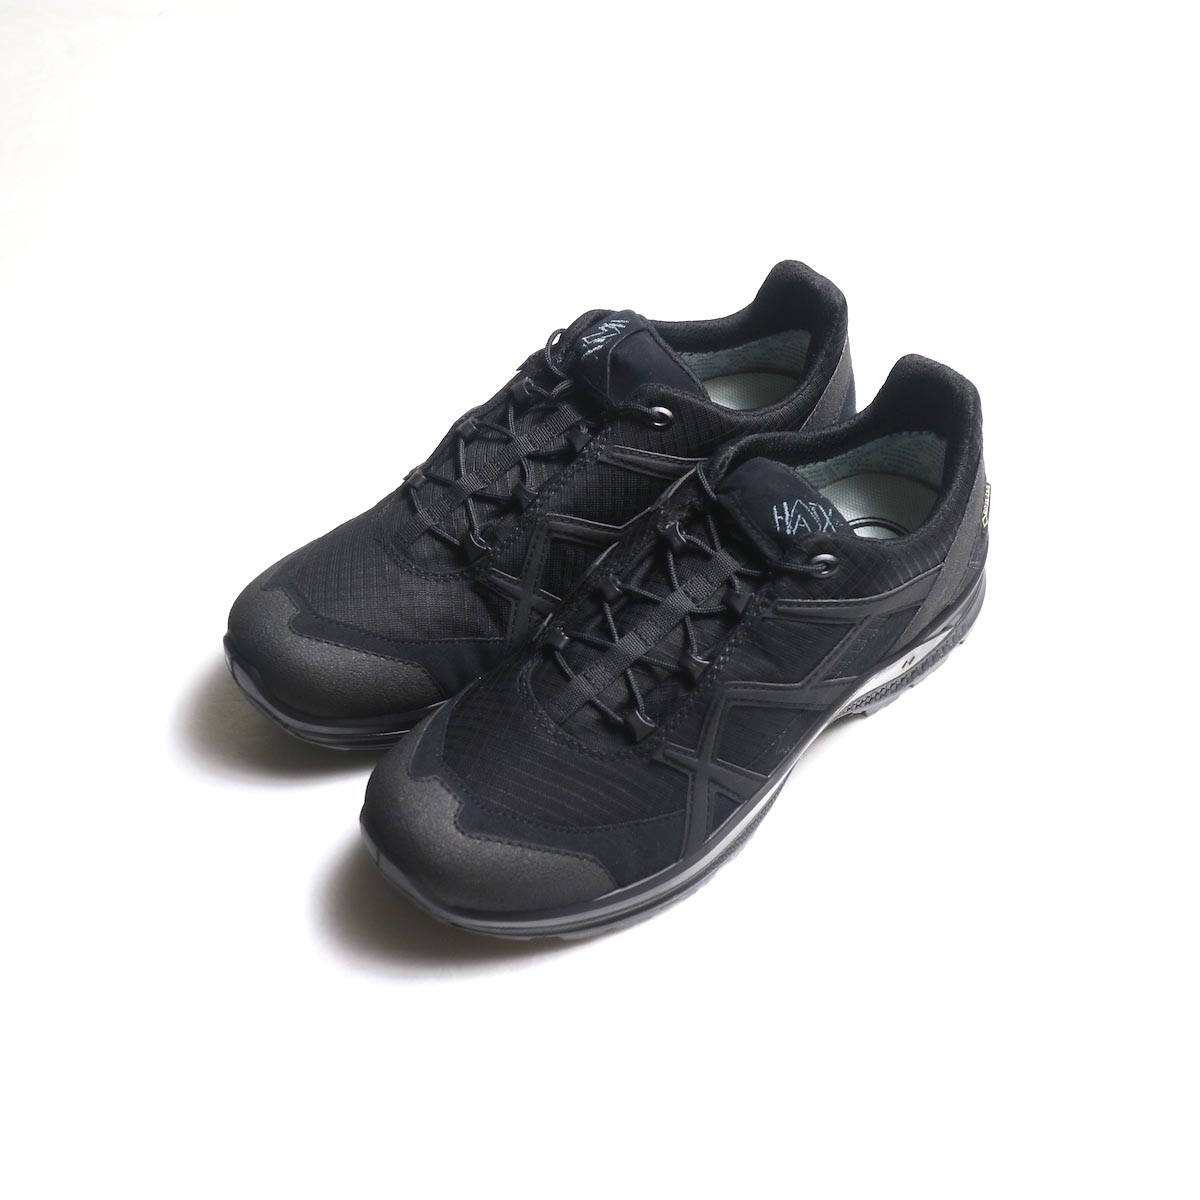 HAIX / BLACK EAGLE - ATHLETIC 2.1 GTX LOW (Black)